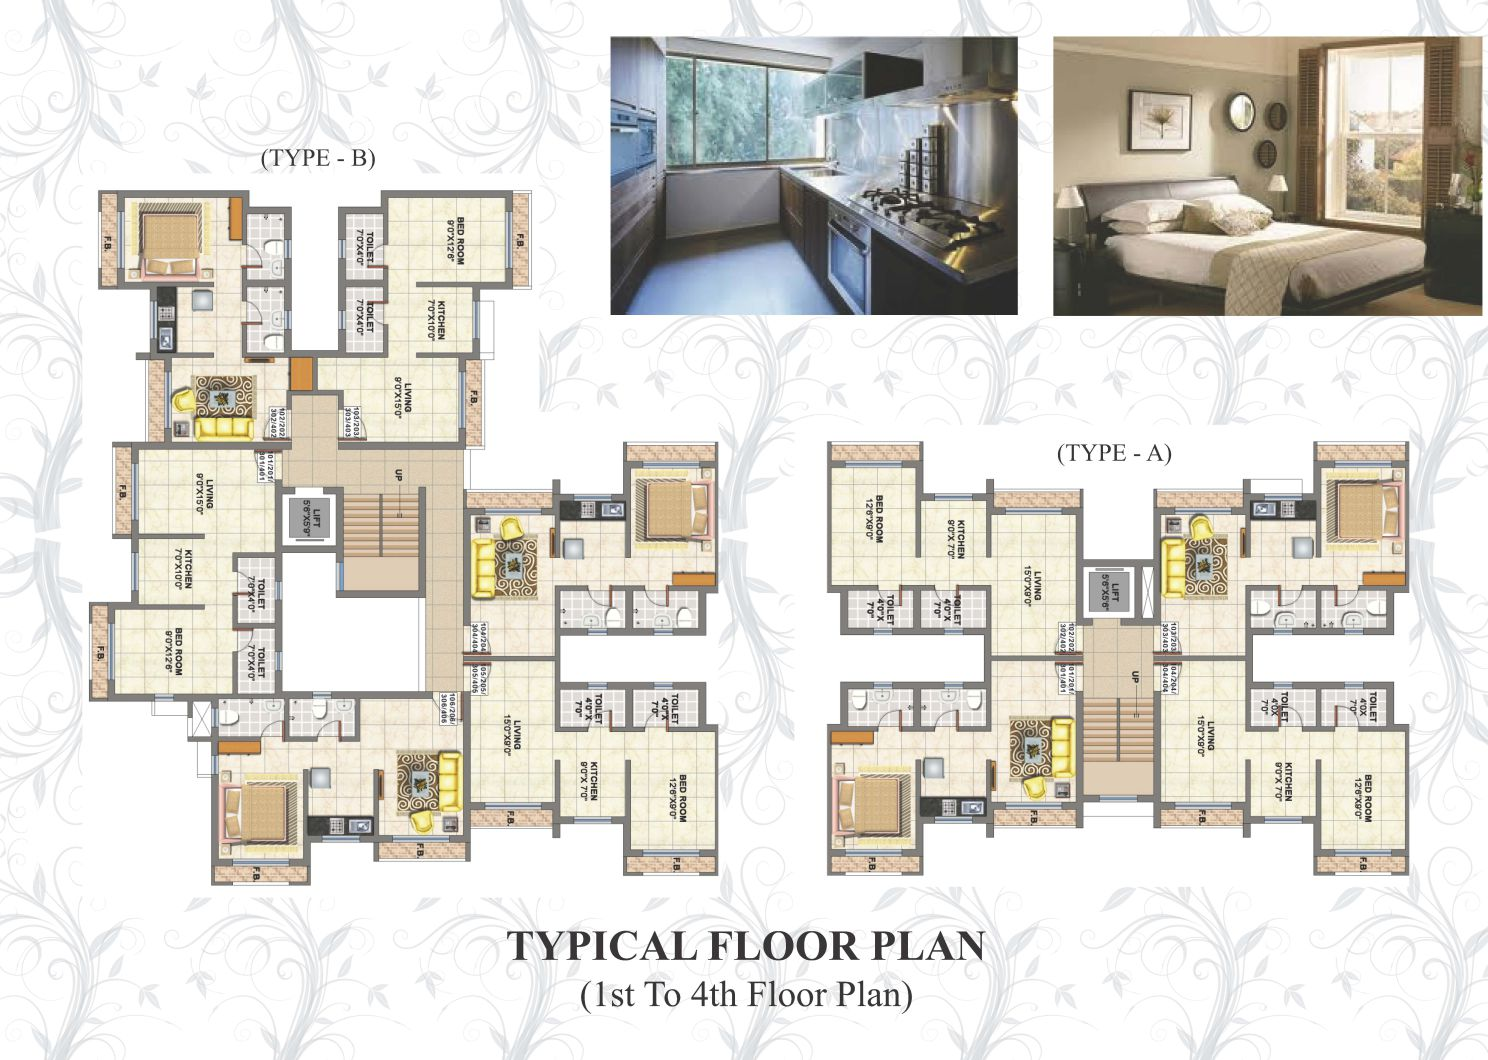 Vardhman Nagar Floor Plan - Palghar West, India